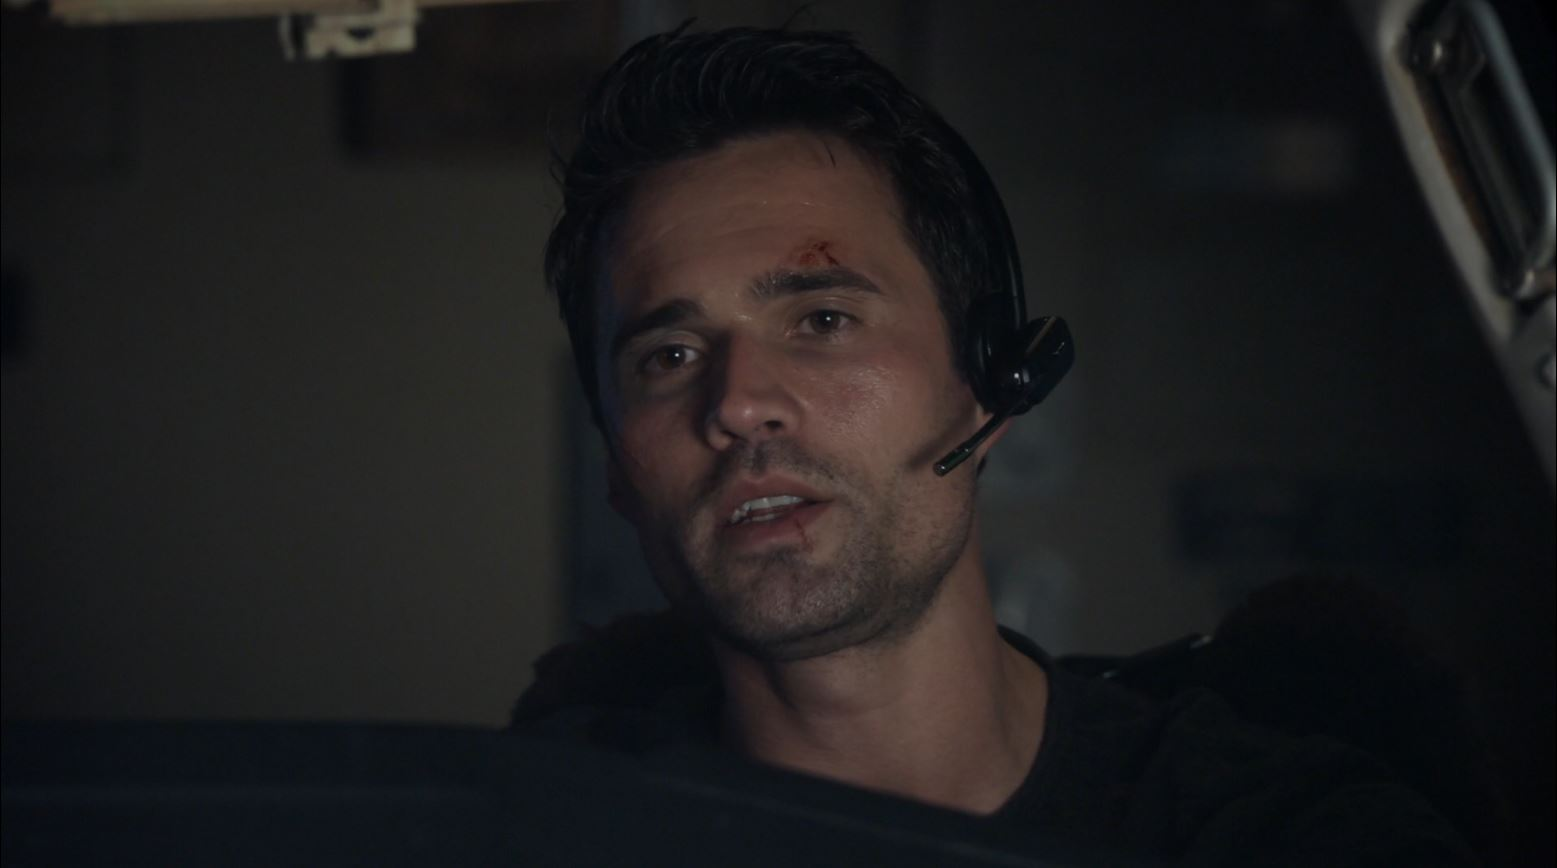 Agents of SHIELD S1Ep20 Nothing Personal - Brett Dalton as Ward